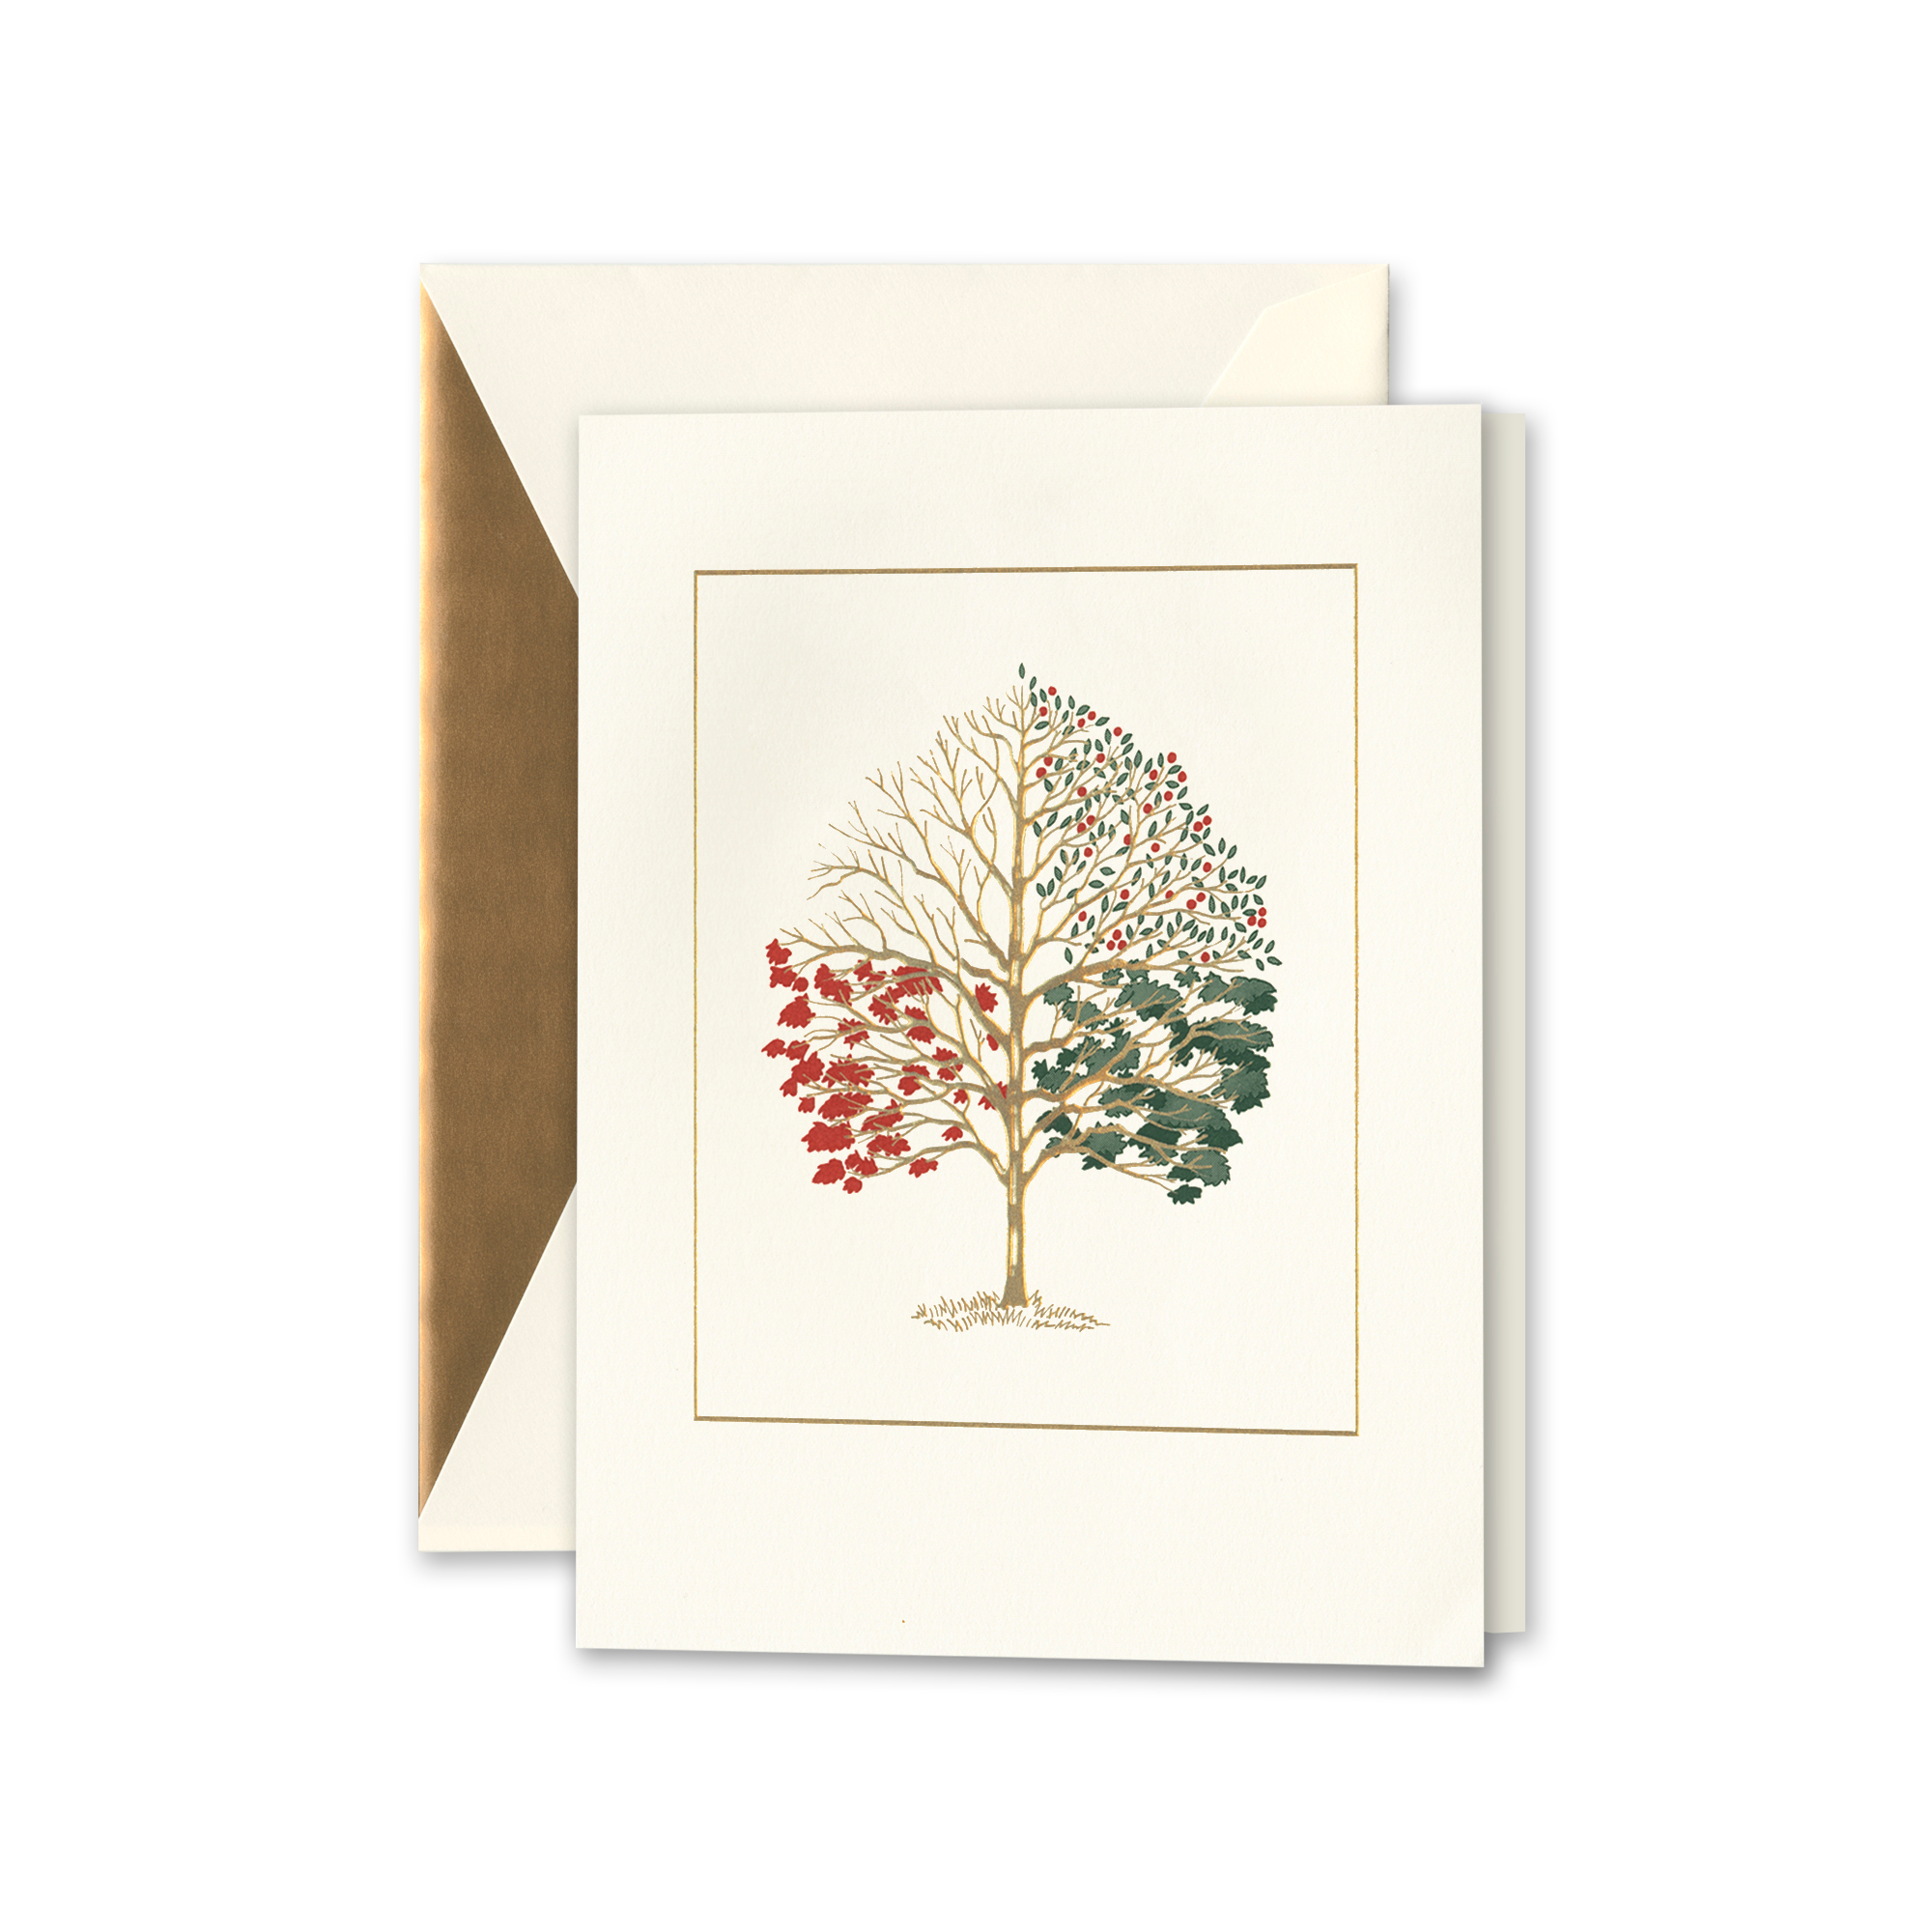 Crane & Co. Four Seasons Cards, Set of 10